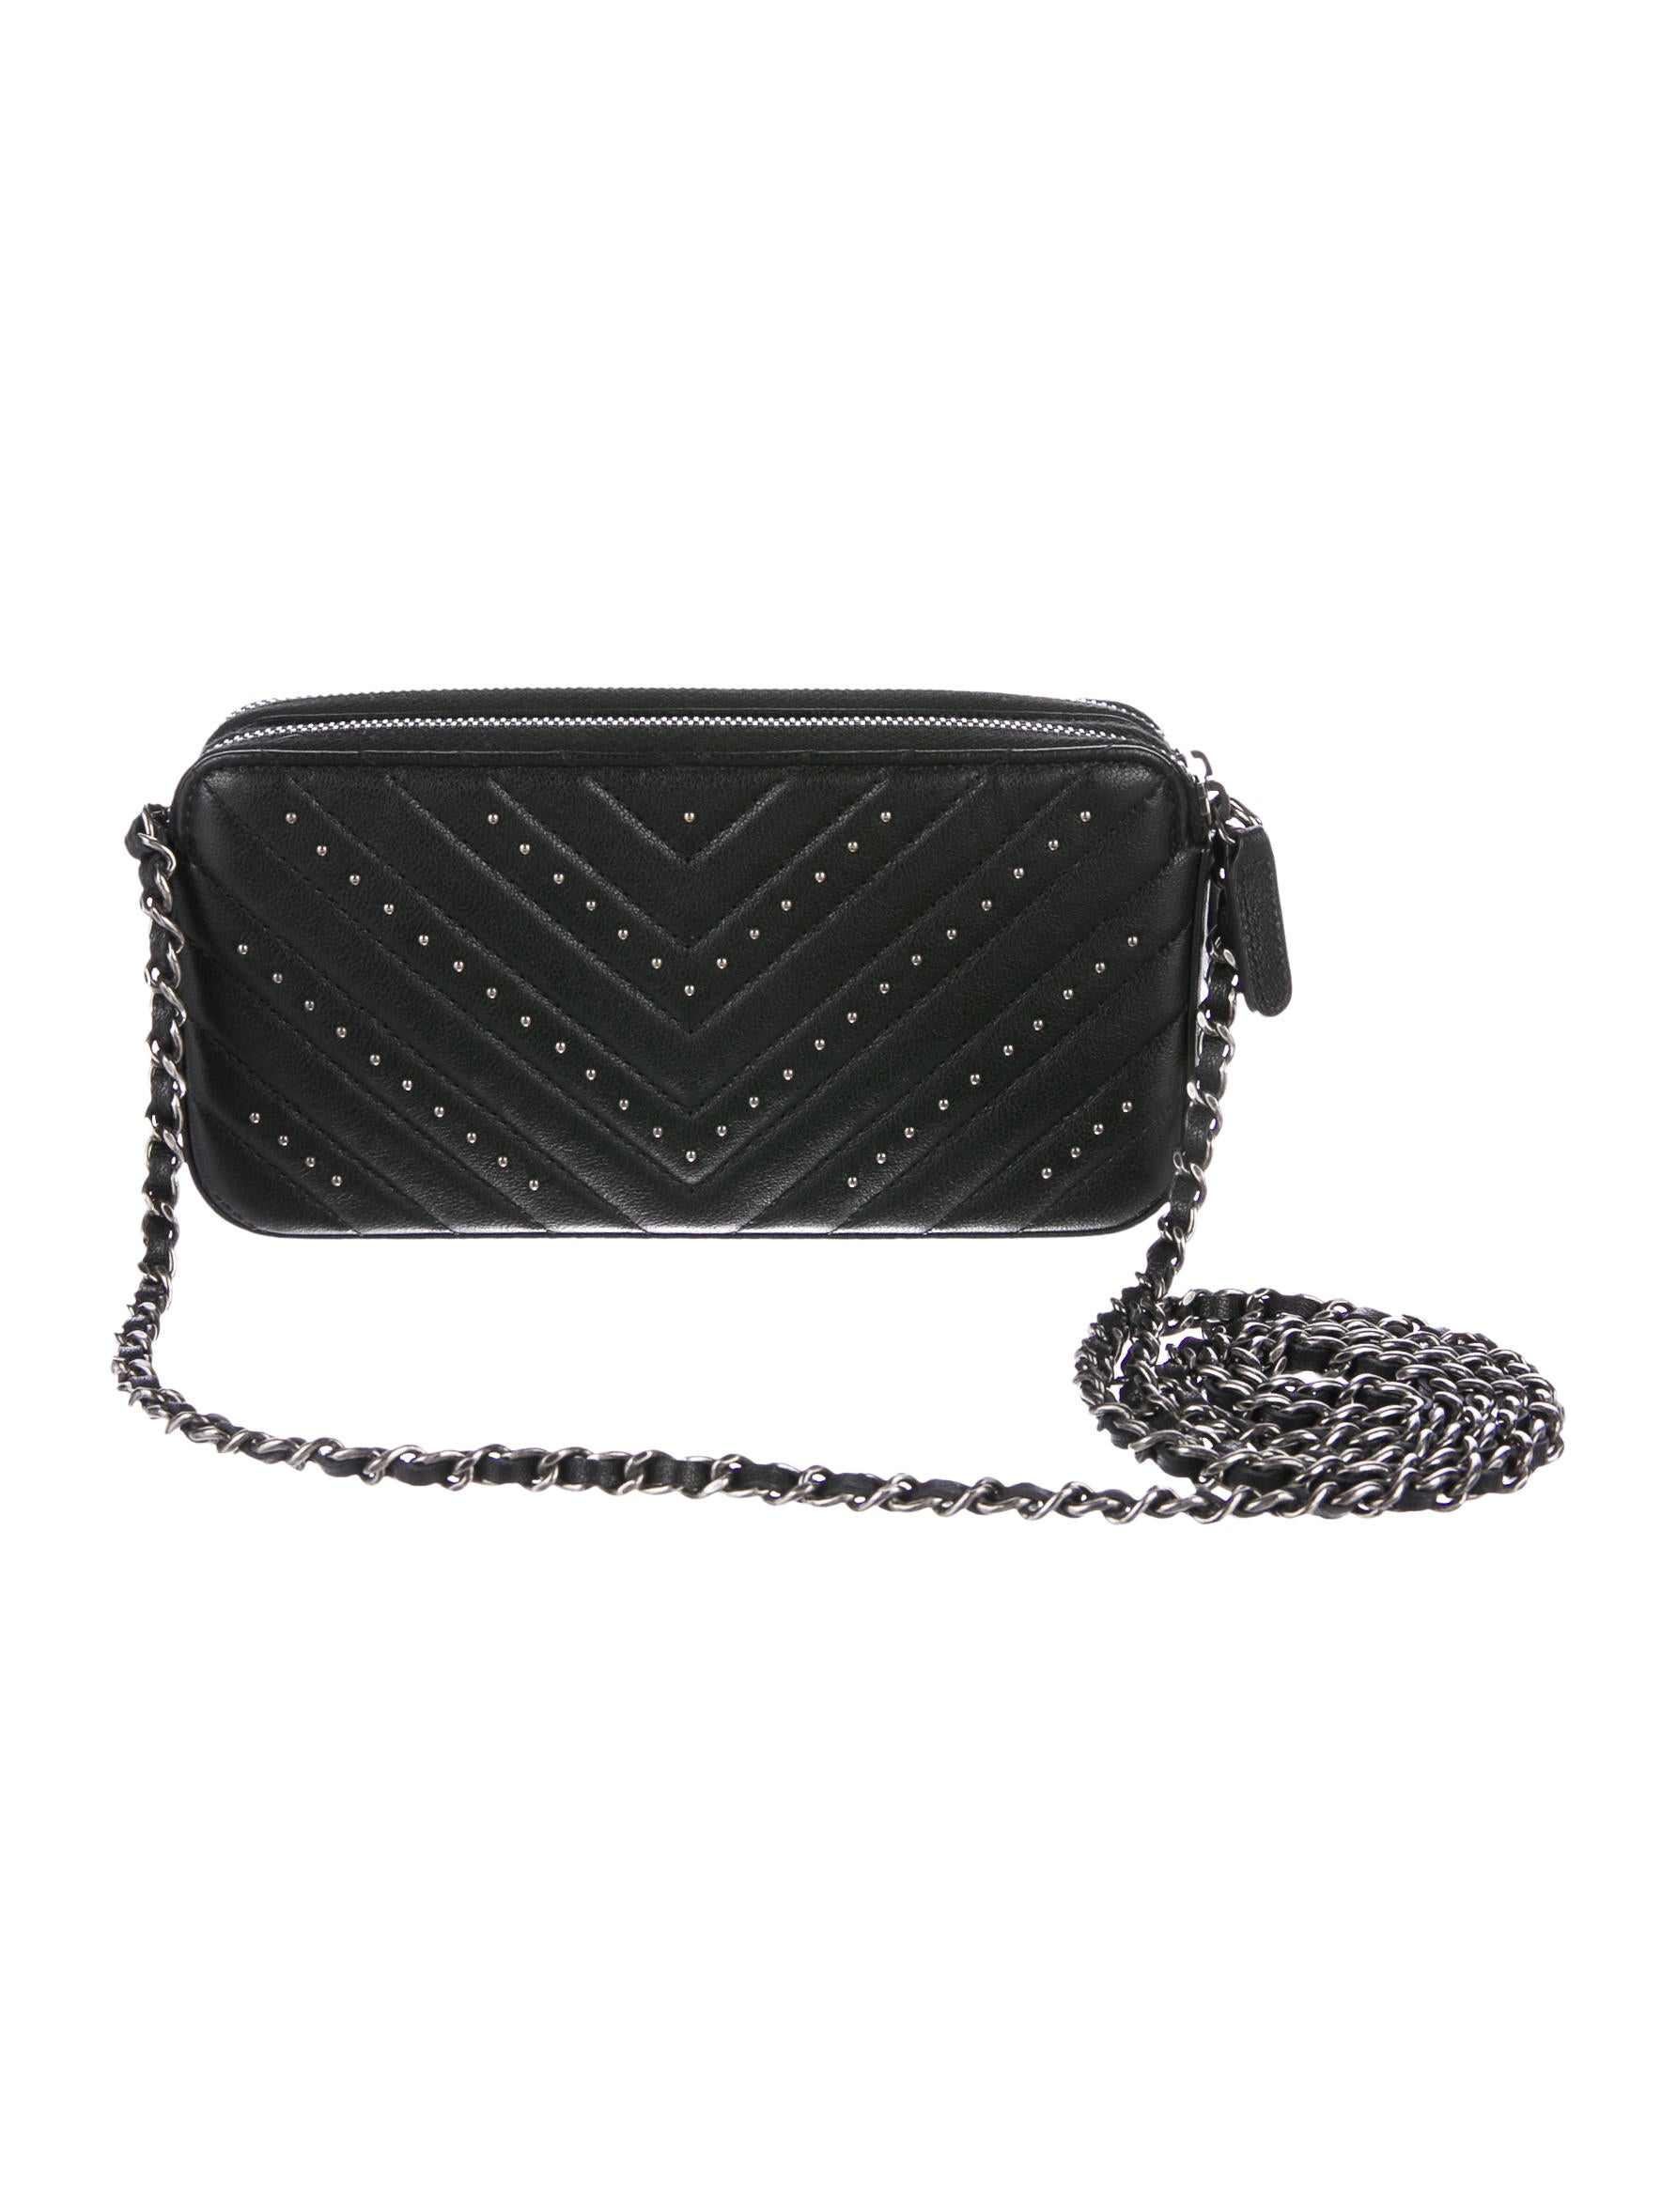 f6efec891d02bb Chanel Clutch Bags 2017 | Stanford Center for Opportunity Policy in ...